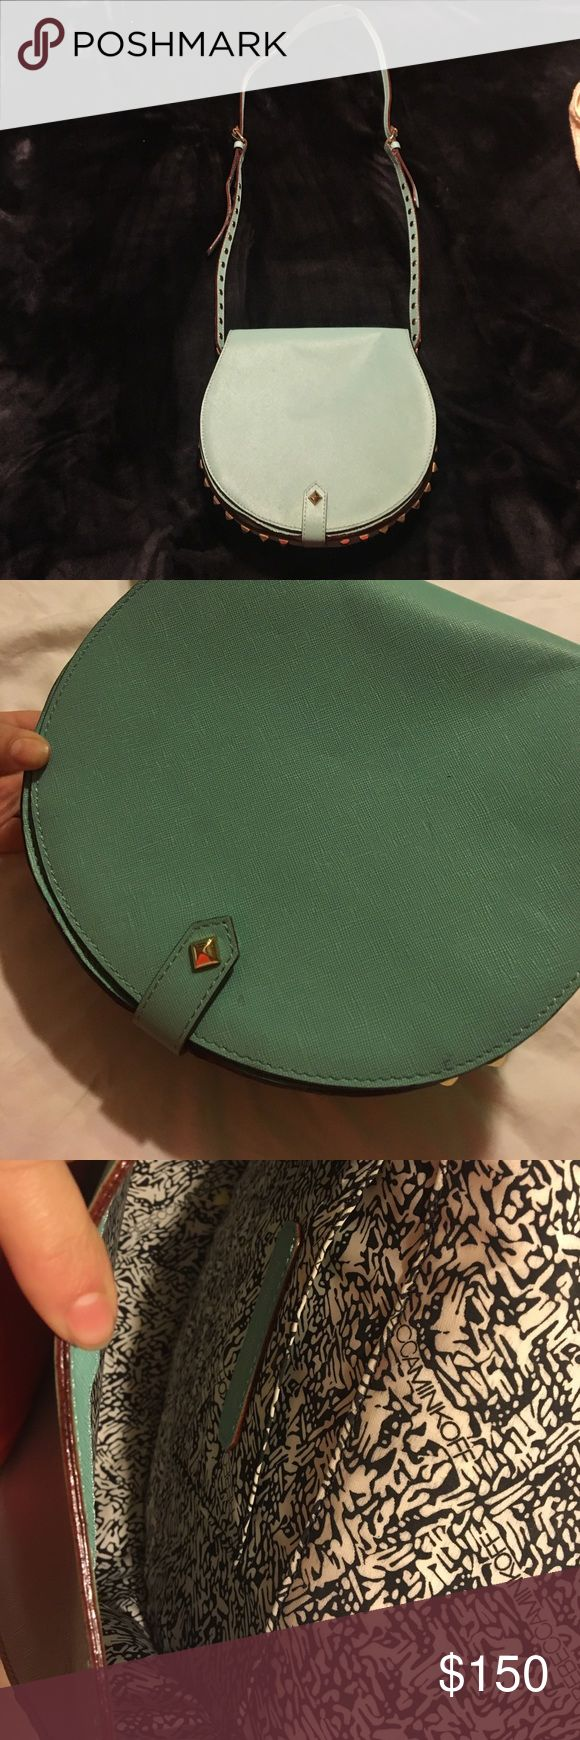 Rebecca Minkoff cross body bag A light blue/ seafoam blue medium sized bag with studs. In very good condition. Has 3 spots but very clean. No studs missing.  Bough at Bloomingdales for $300 Bags Crossbody Bags